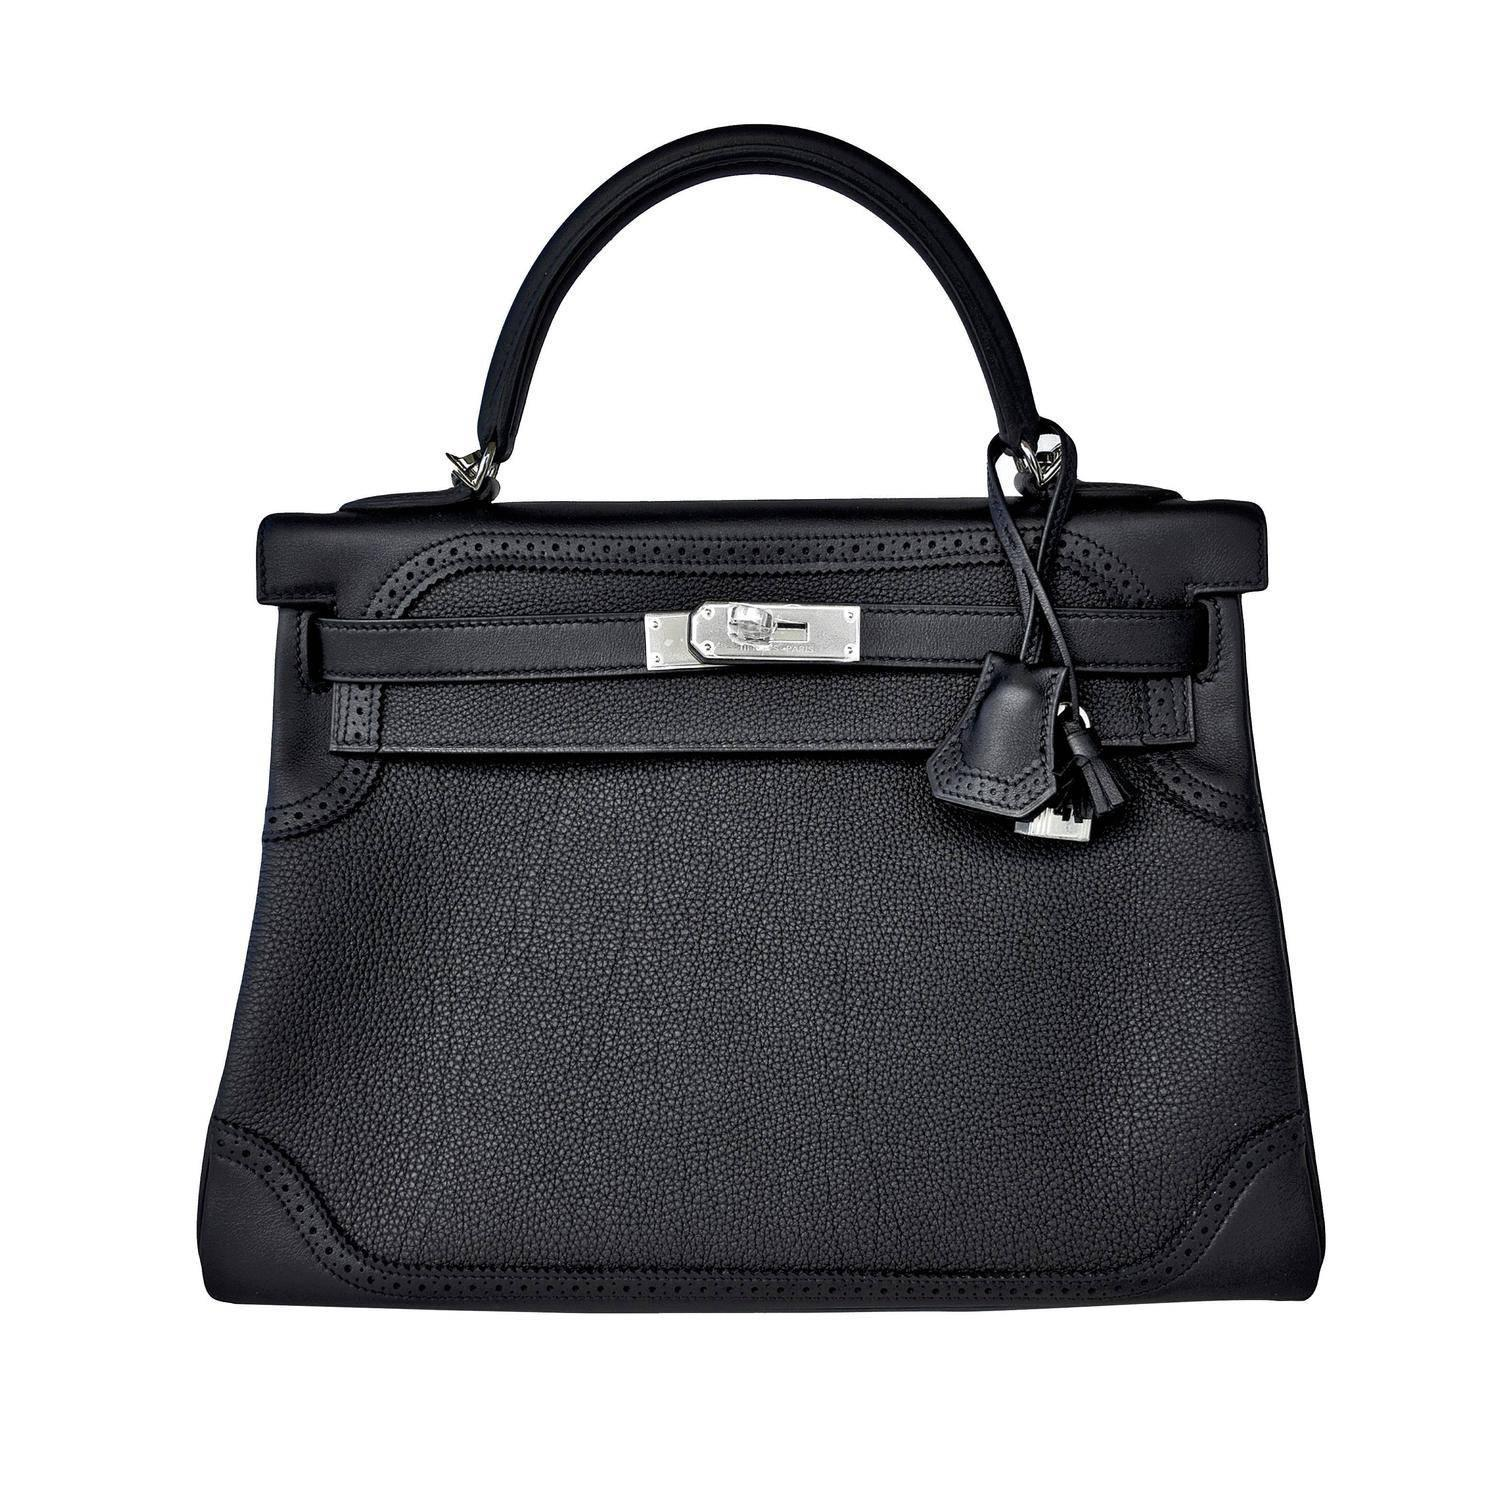 authentic hermes bags outlet - Hermes Anemone Constance MM Shoulder Palladium PHW Bag For Sale at ...